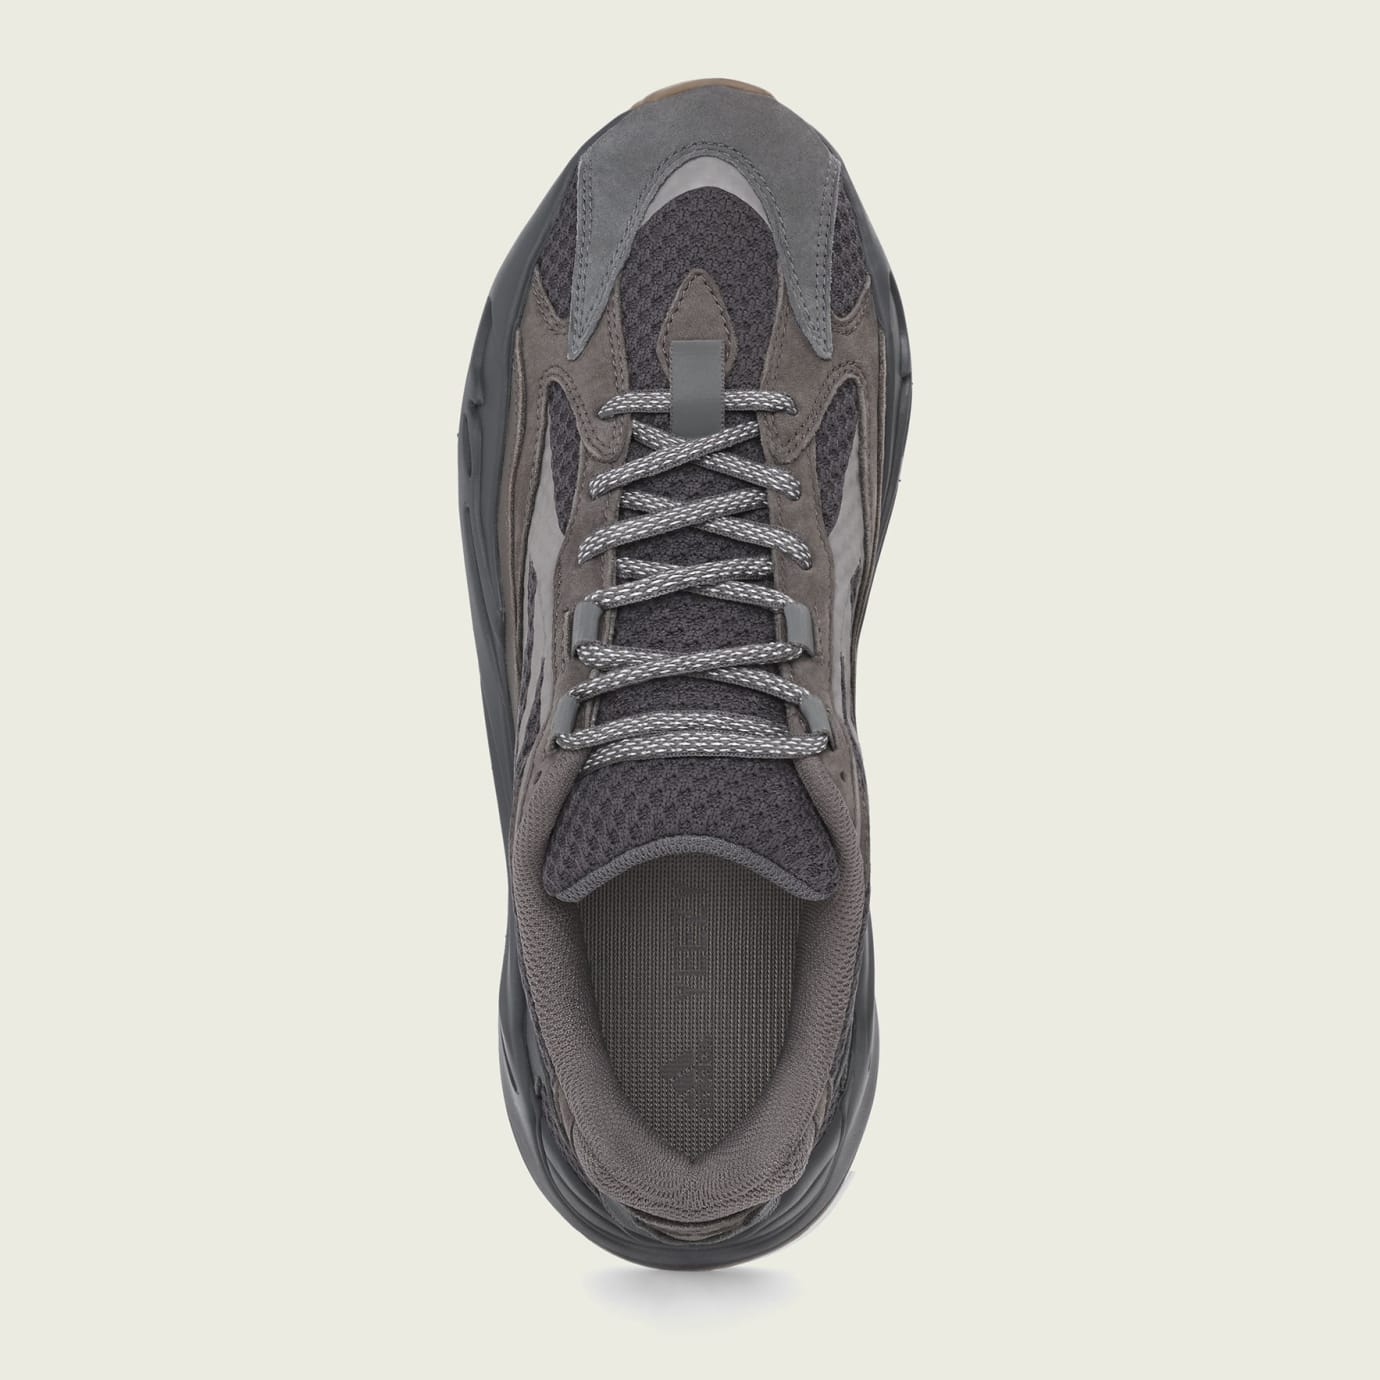 4e7ecab0ffb Adidas Yeezy Boost 700 V2  Geode  Release Date